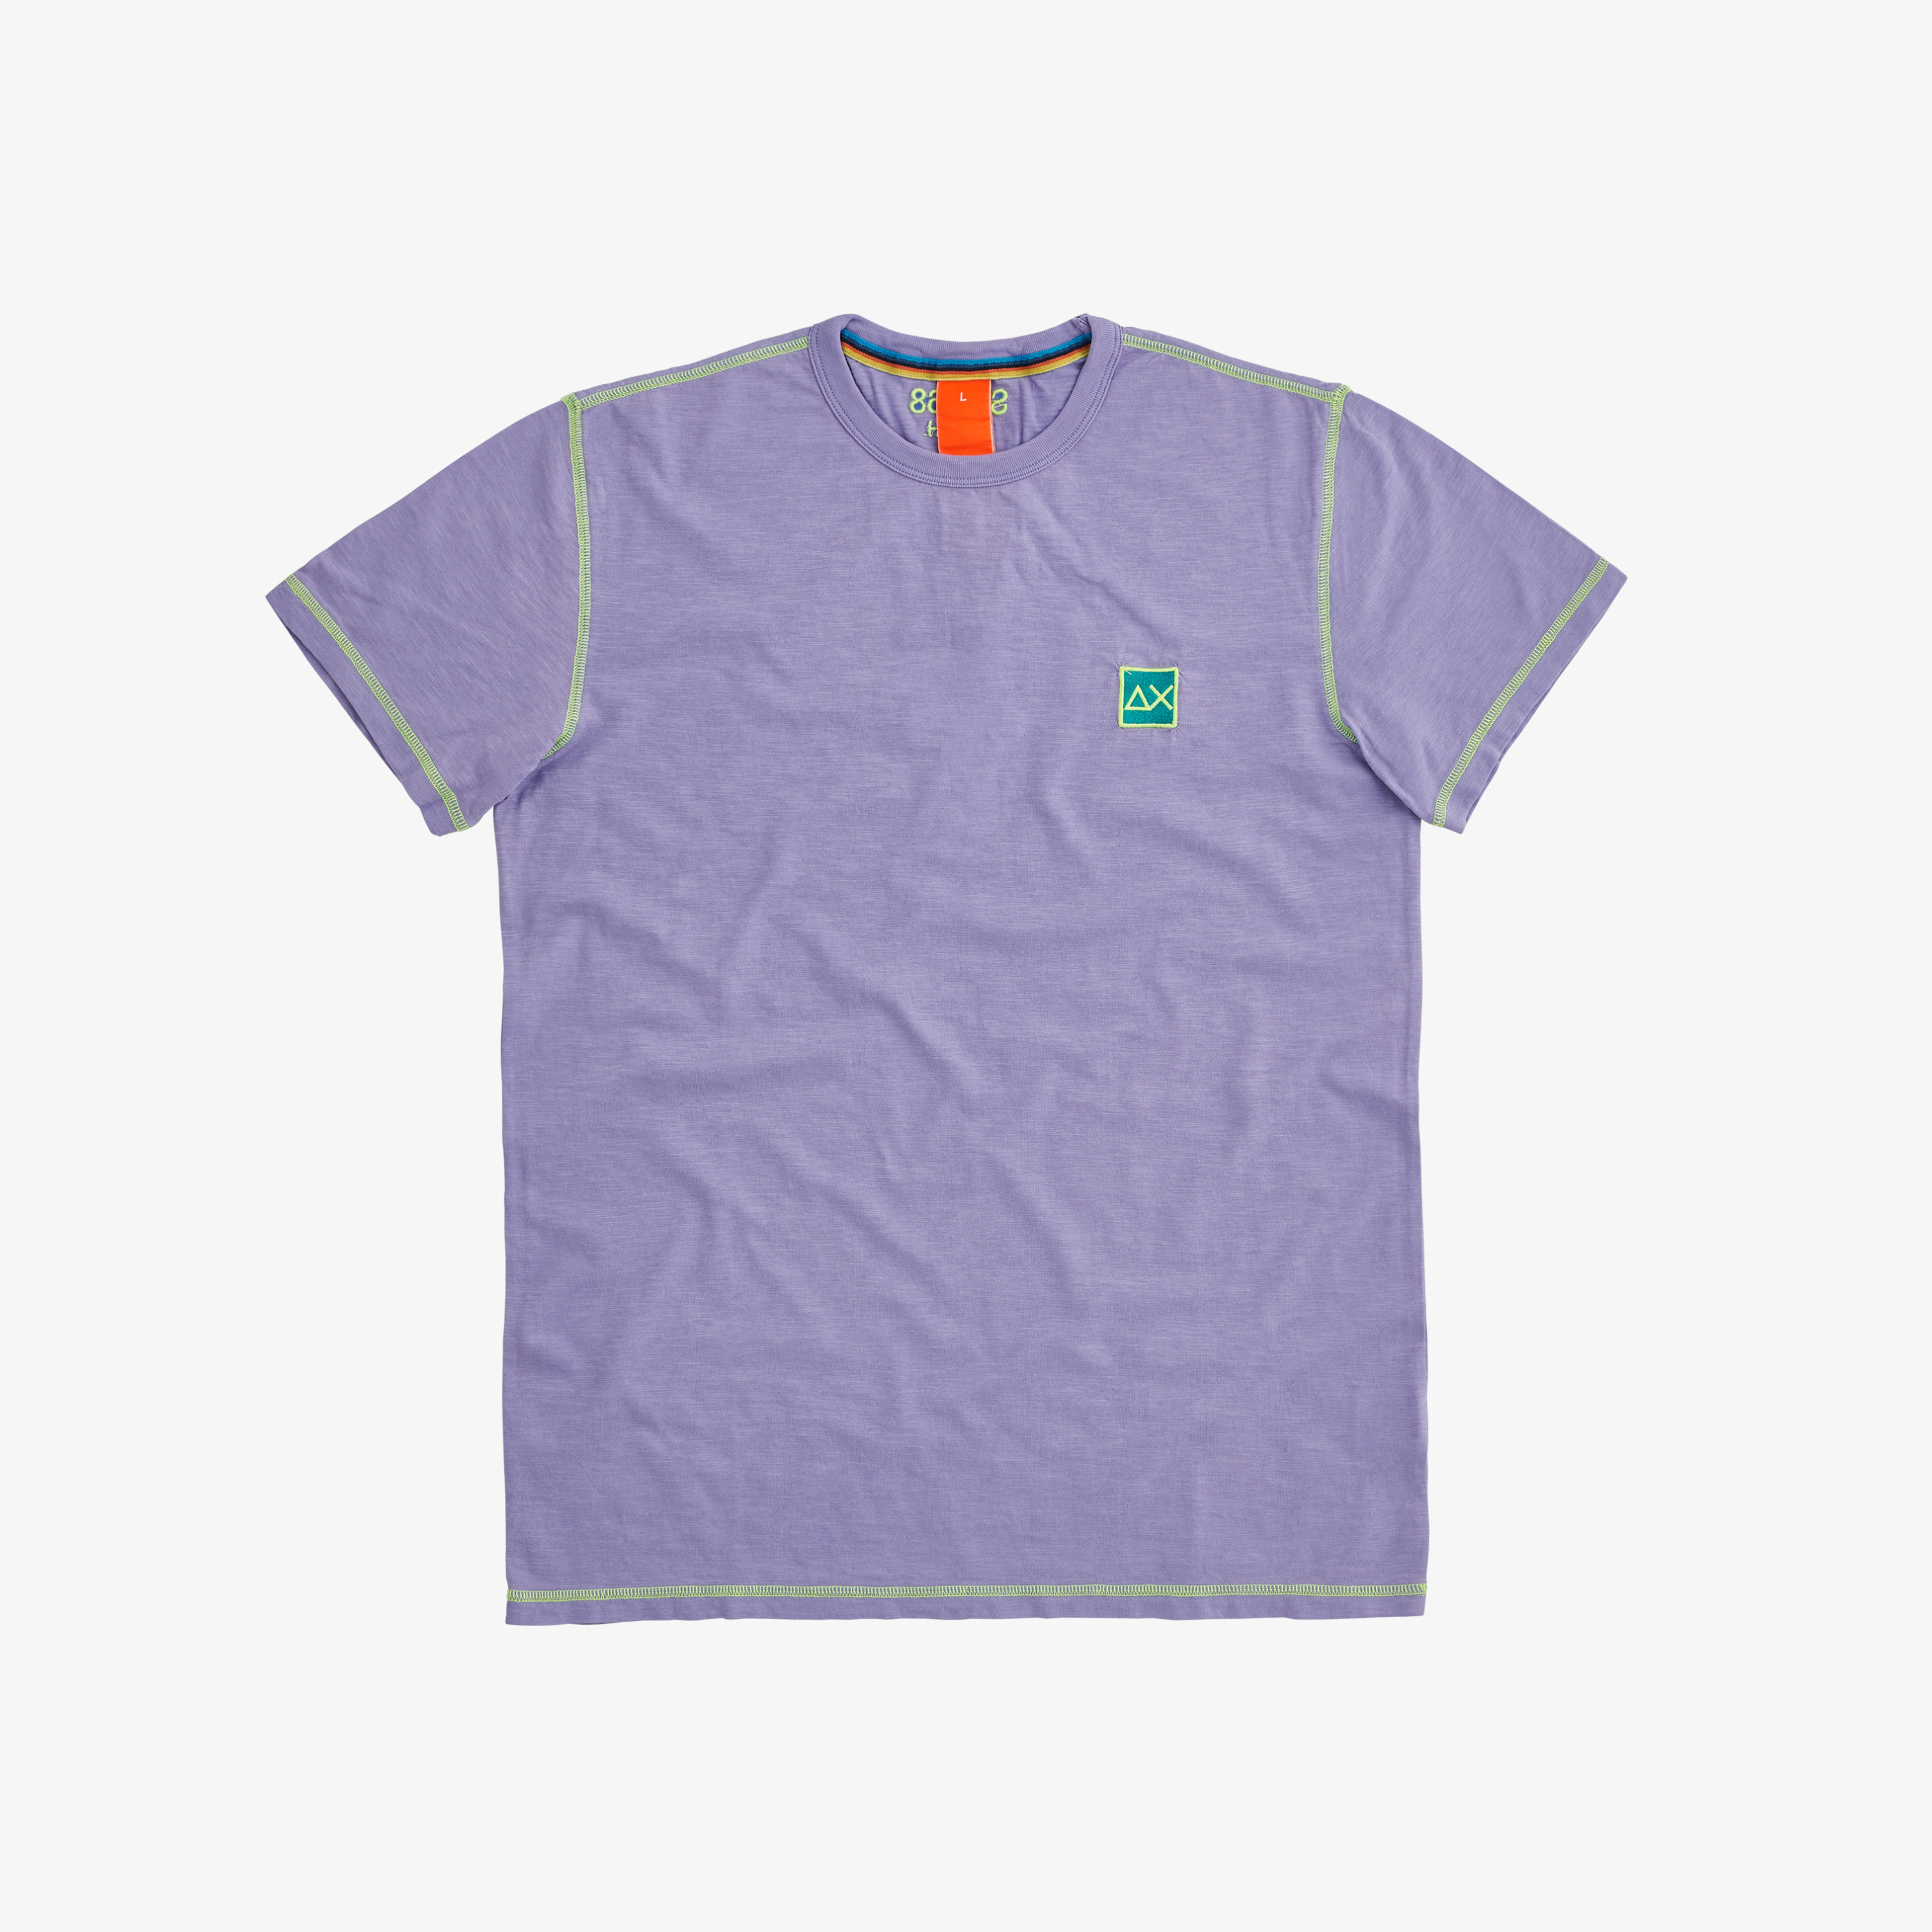 T-SHIRT COLD DYE CONTRAST STITCHING LAVENDER